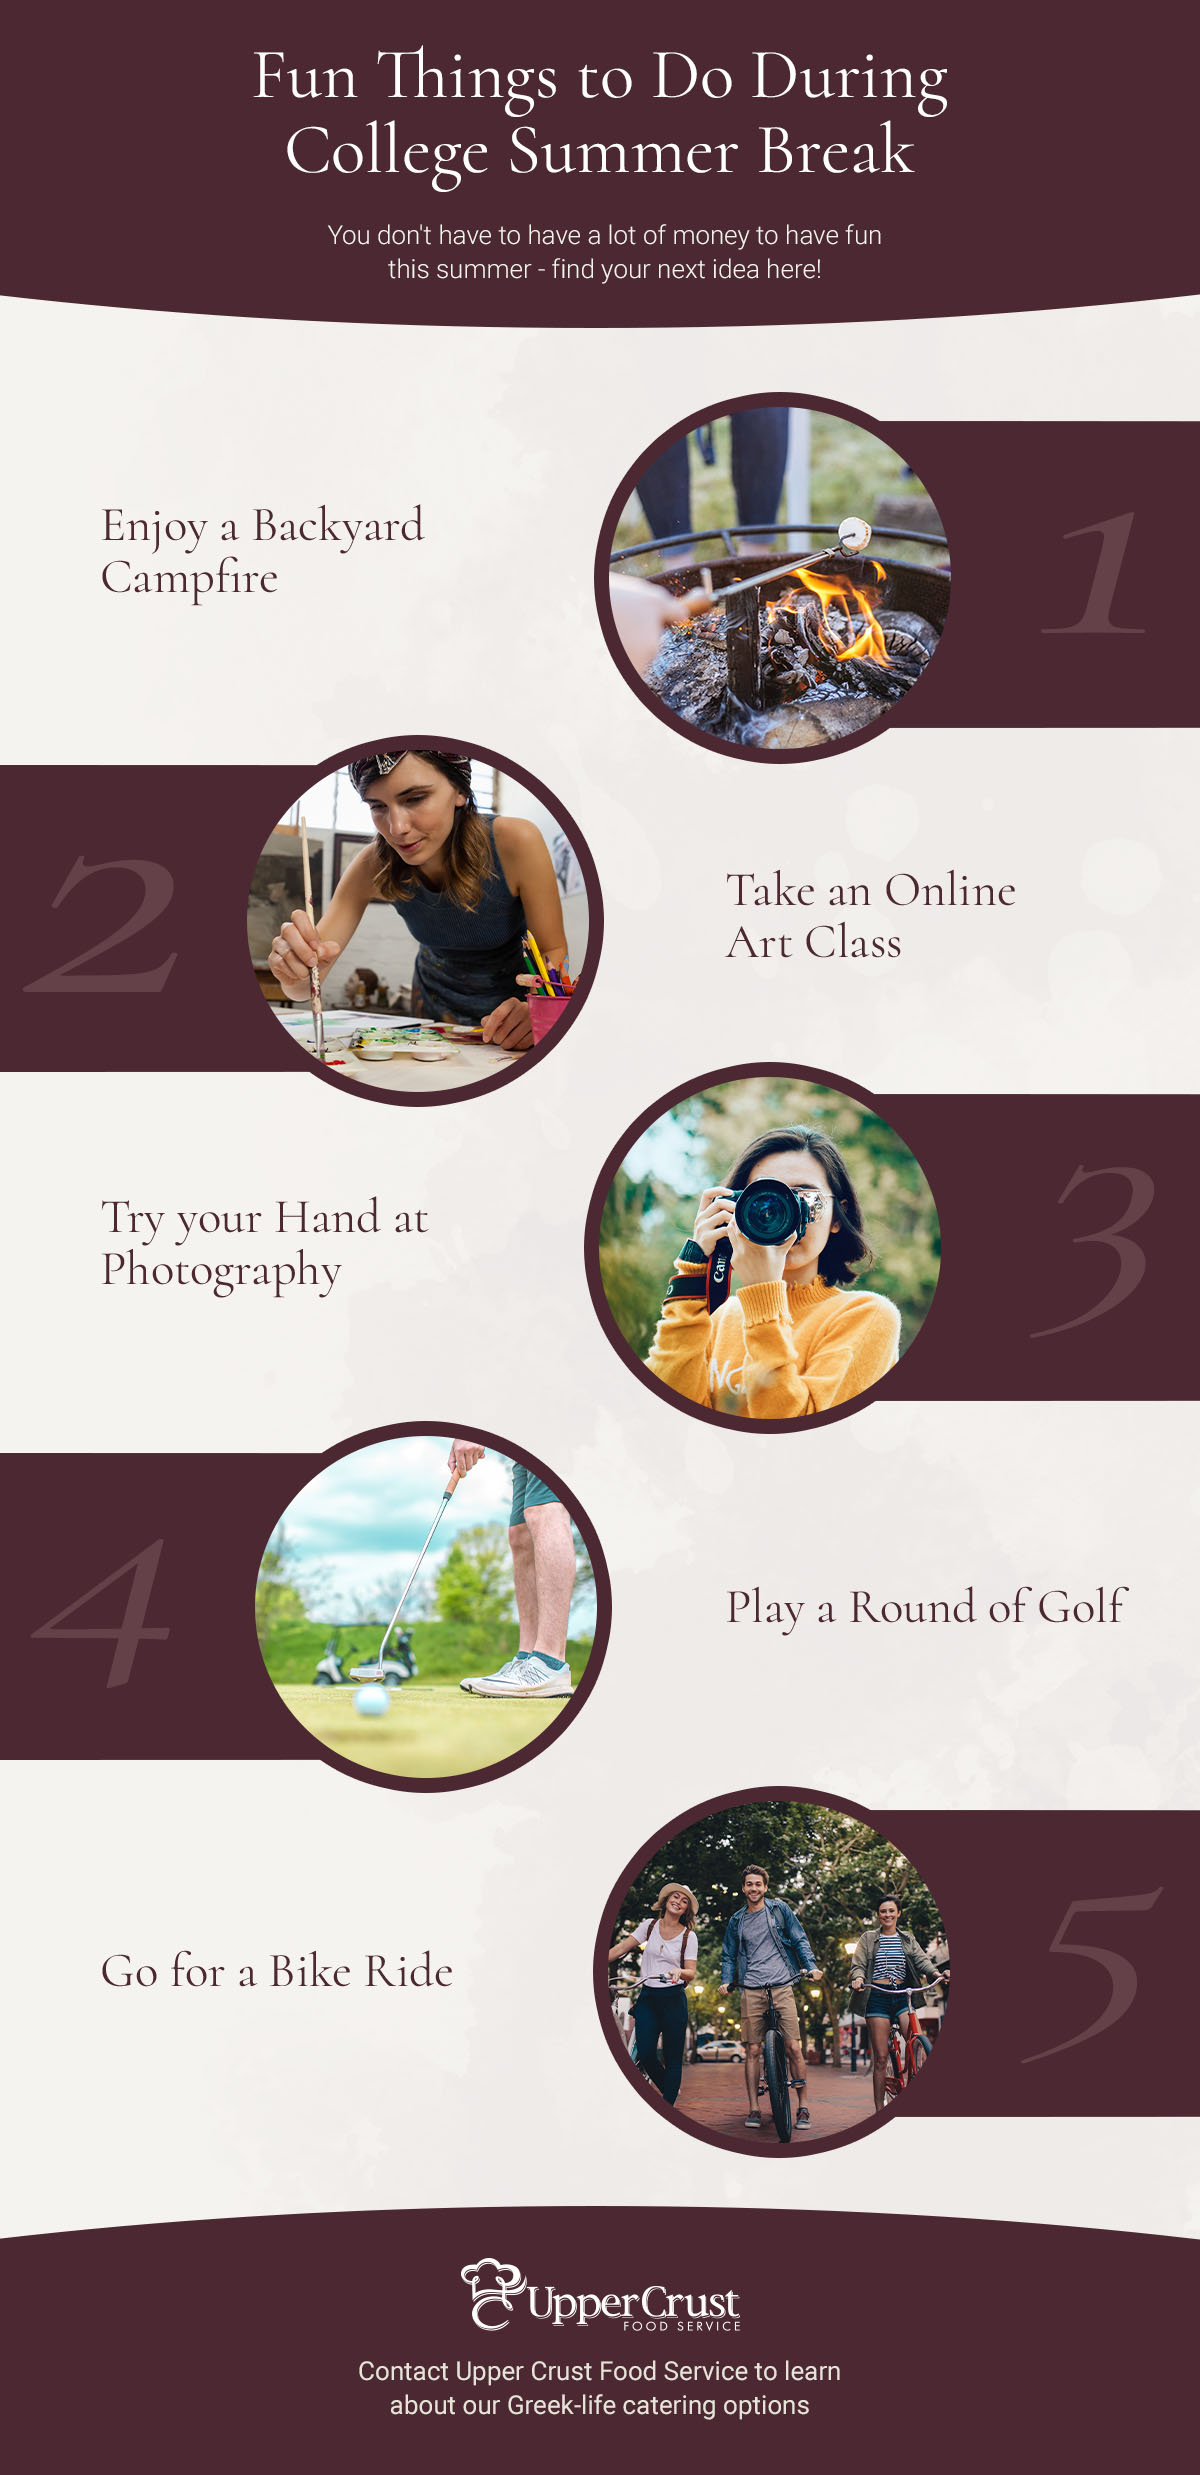 Fun Things to do during college summer break, infographic